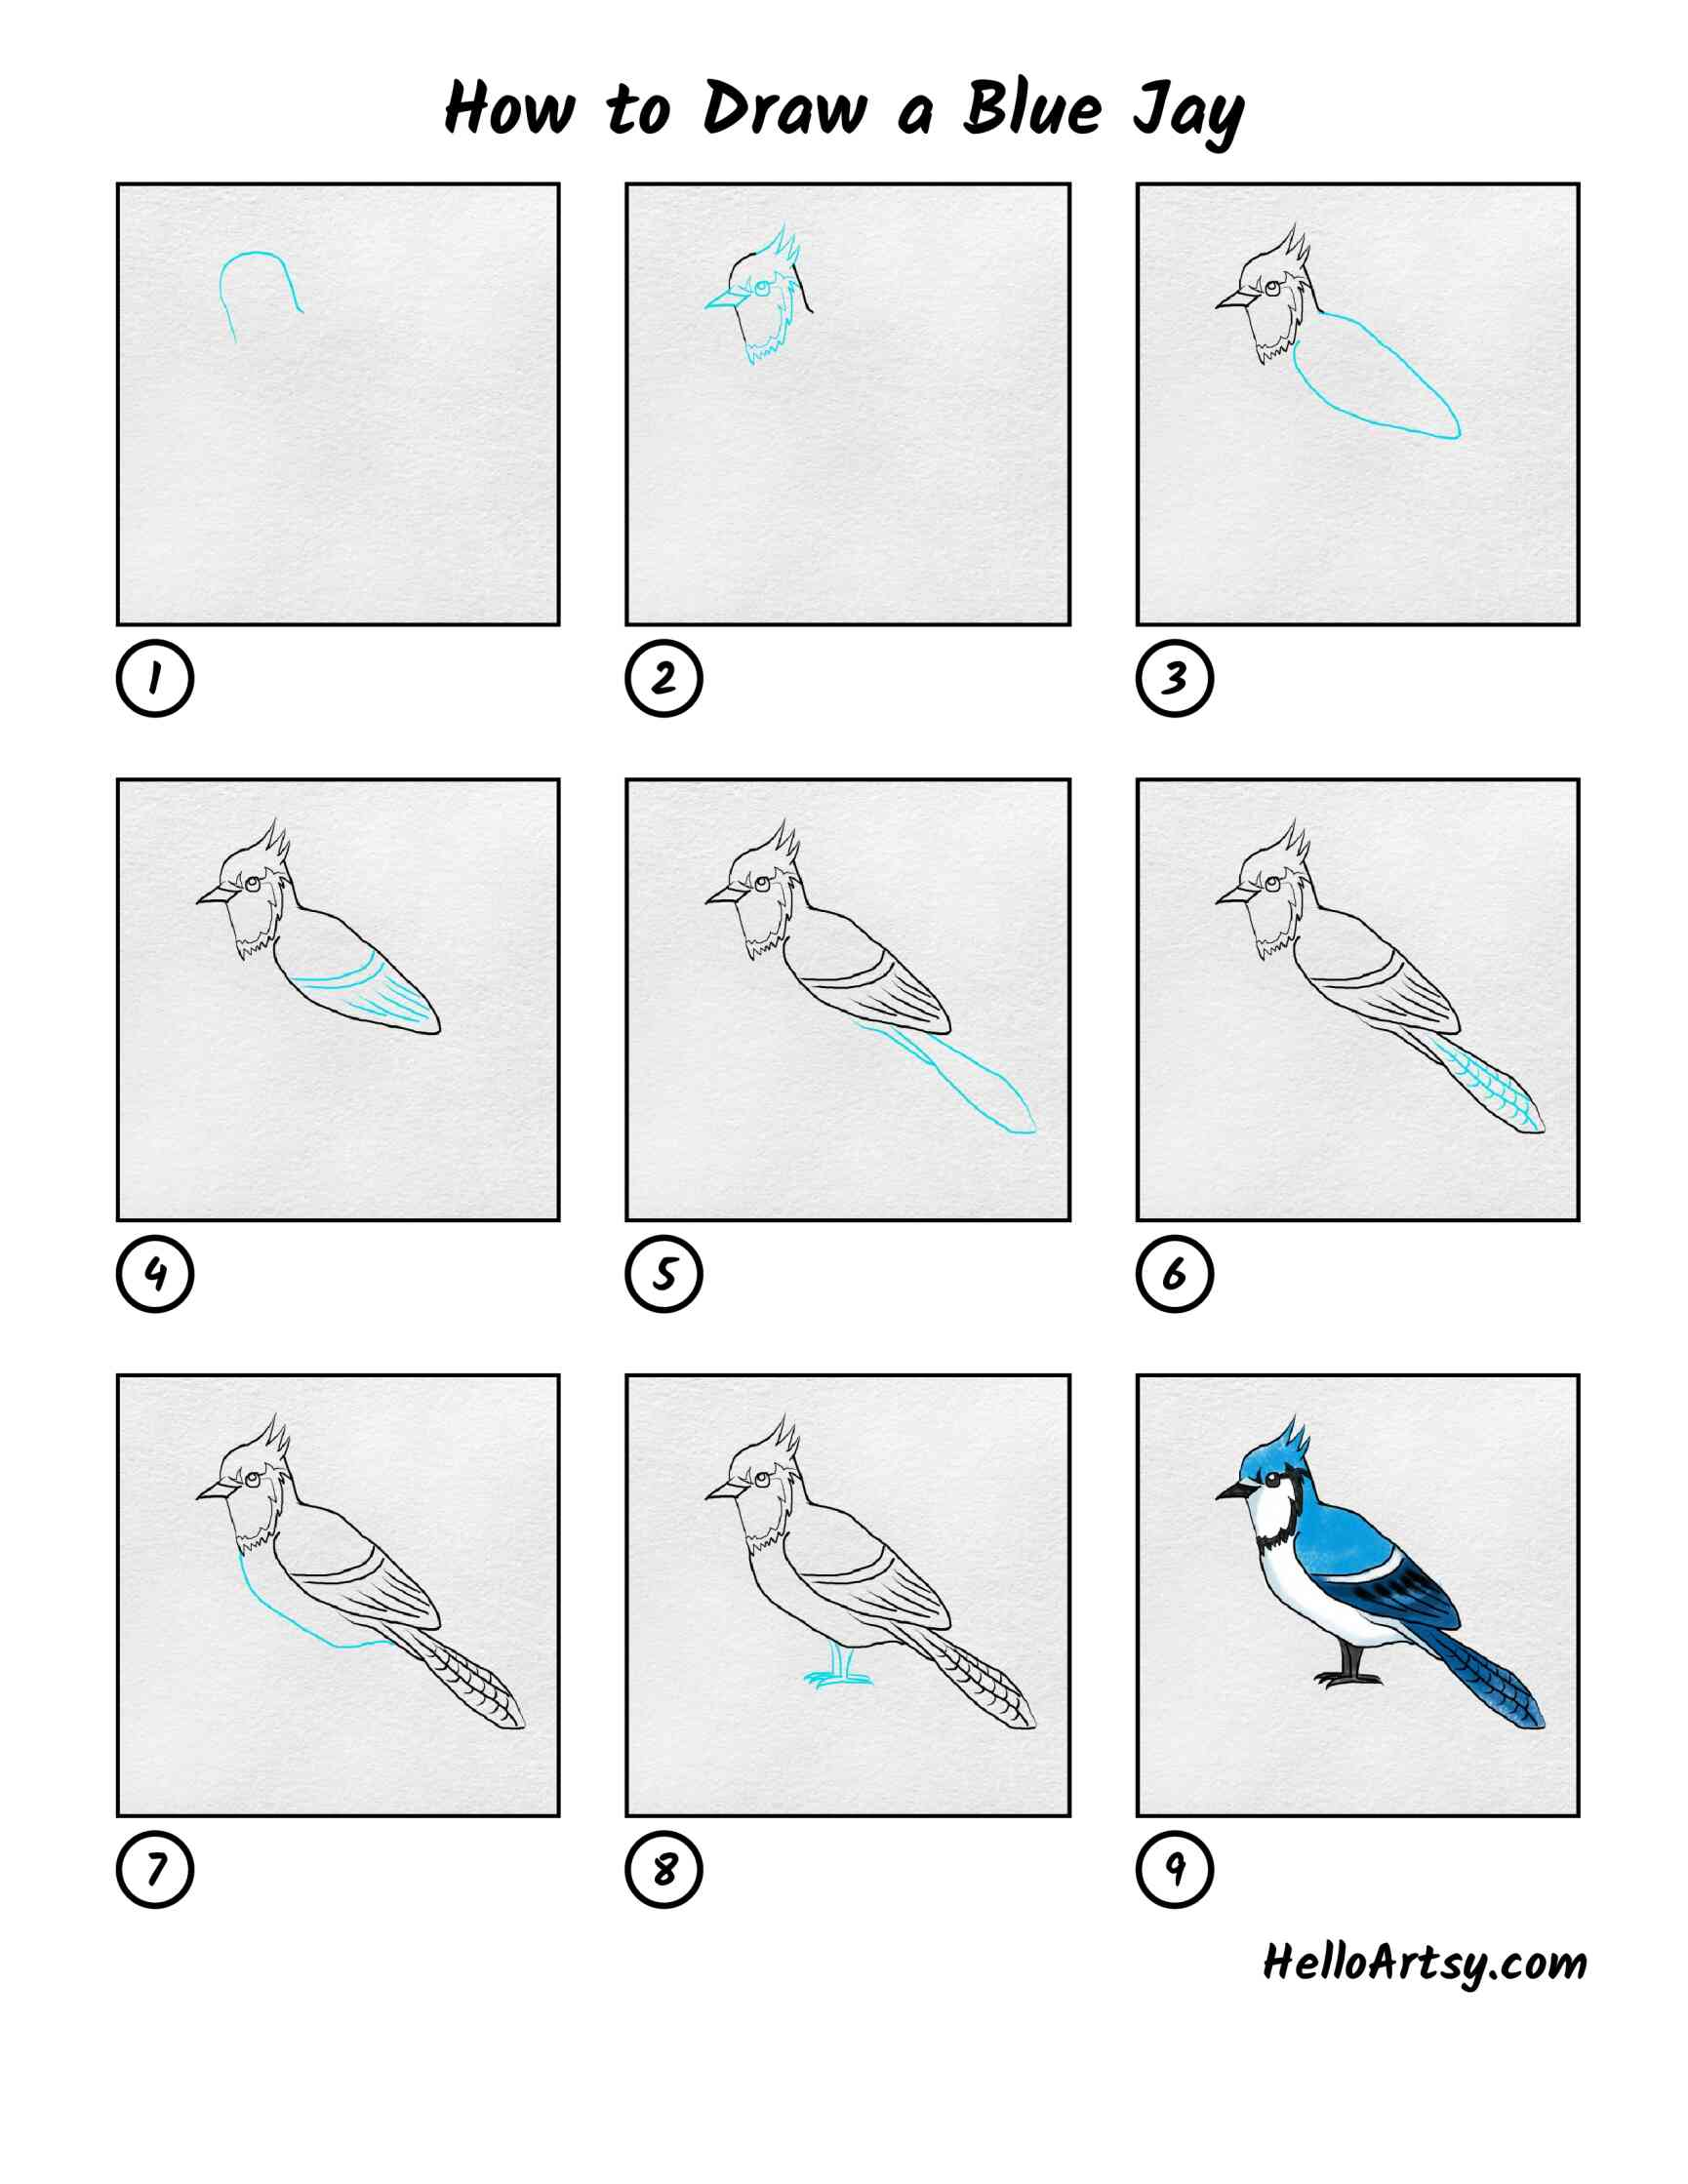 How To Draw A Blue Jay: All Steps